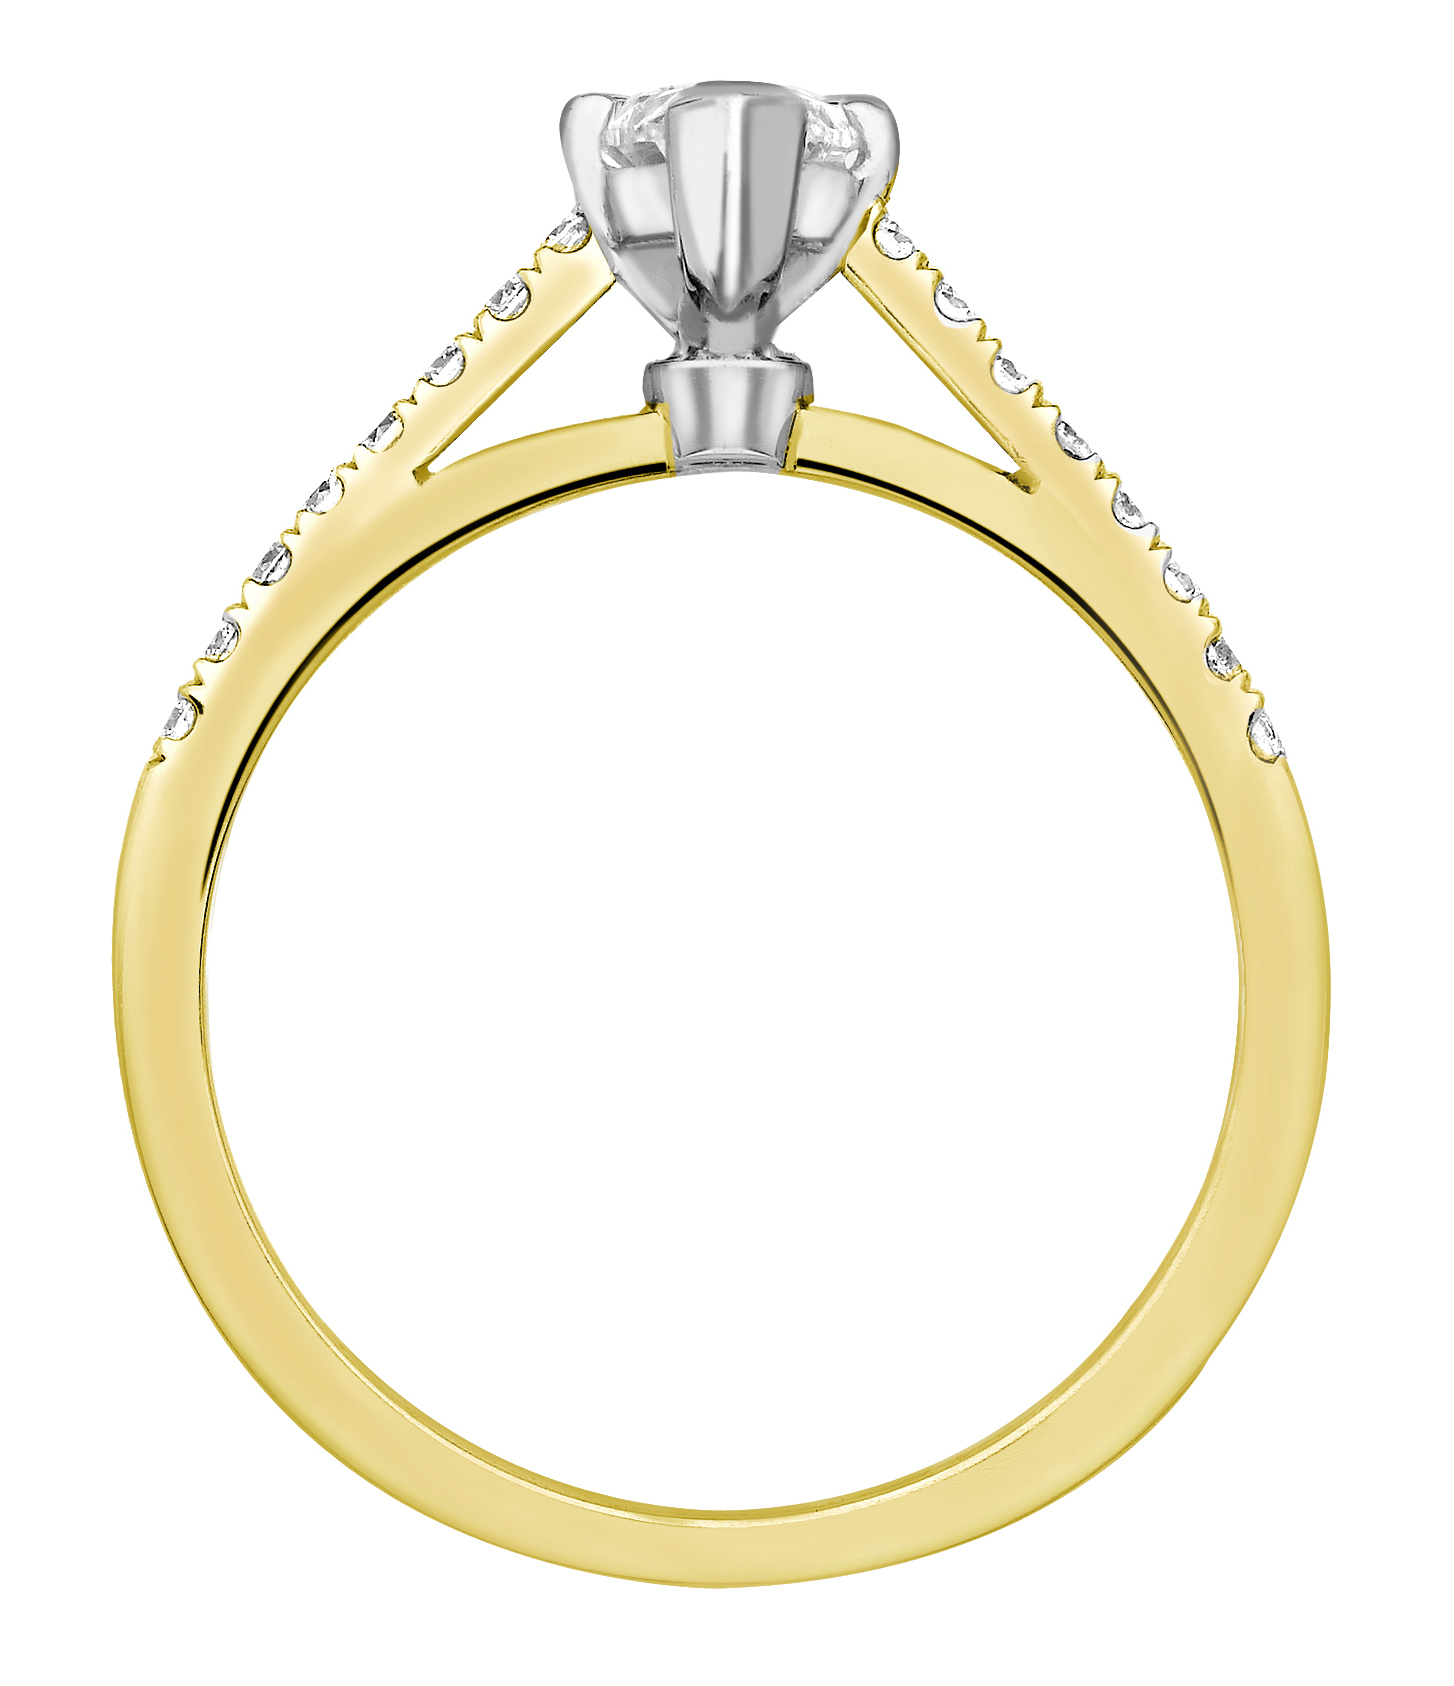 Marquise Cut 4 Claw Yellow Gold Diamond Engagement Ring GRC699YG Image 2